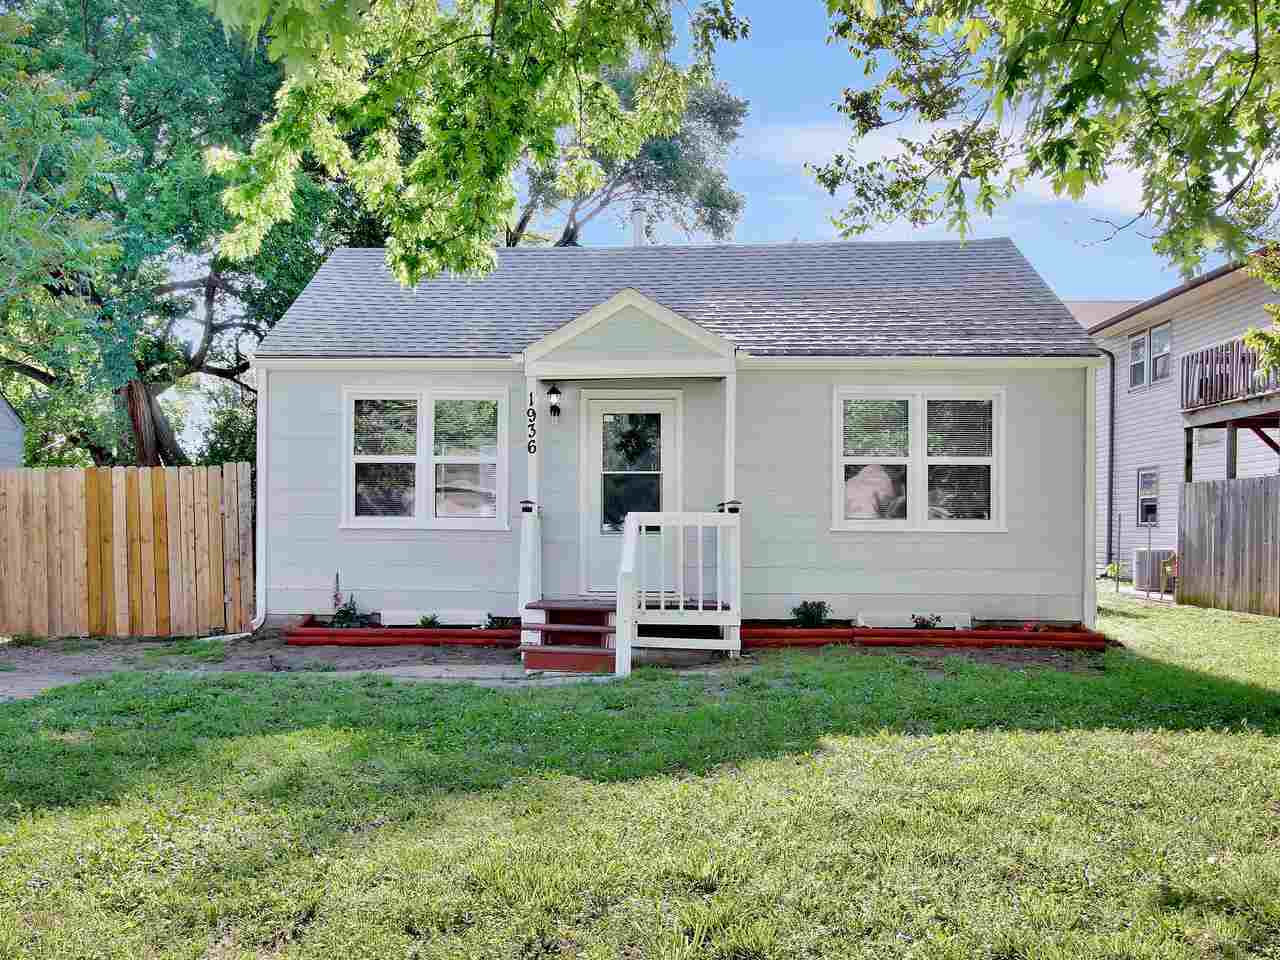 Don't miss out on the opportunity to own this beautifully remodeled 2 bed/1 bath home. You will love